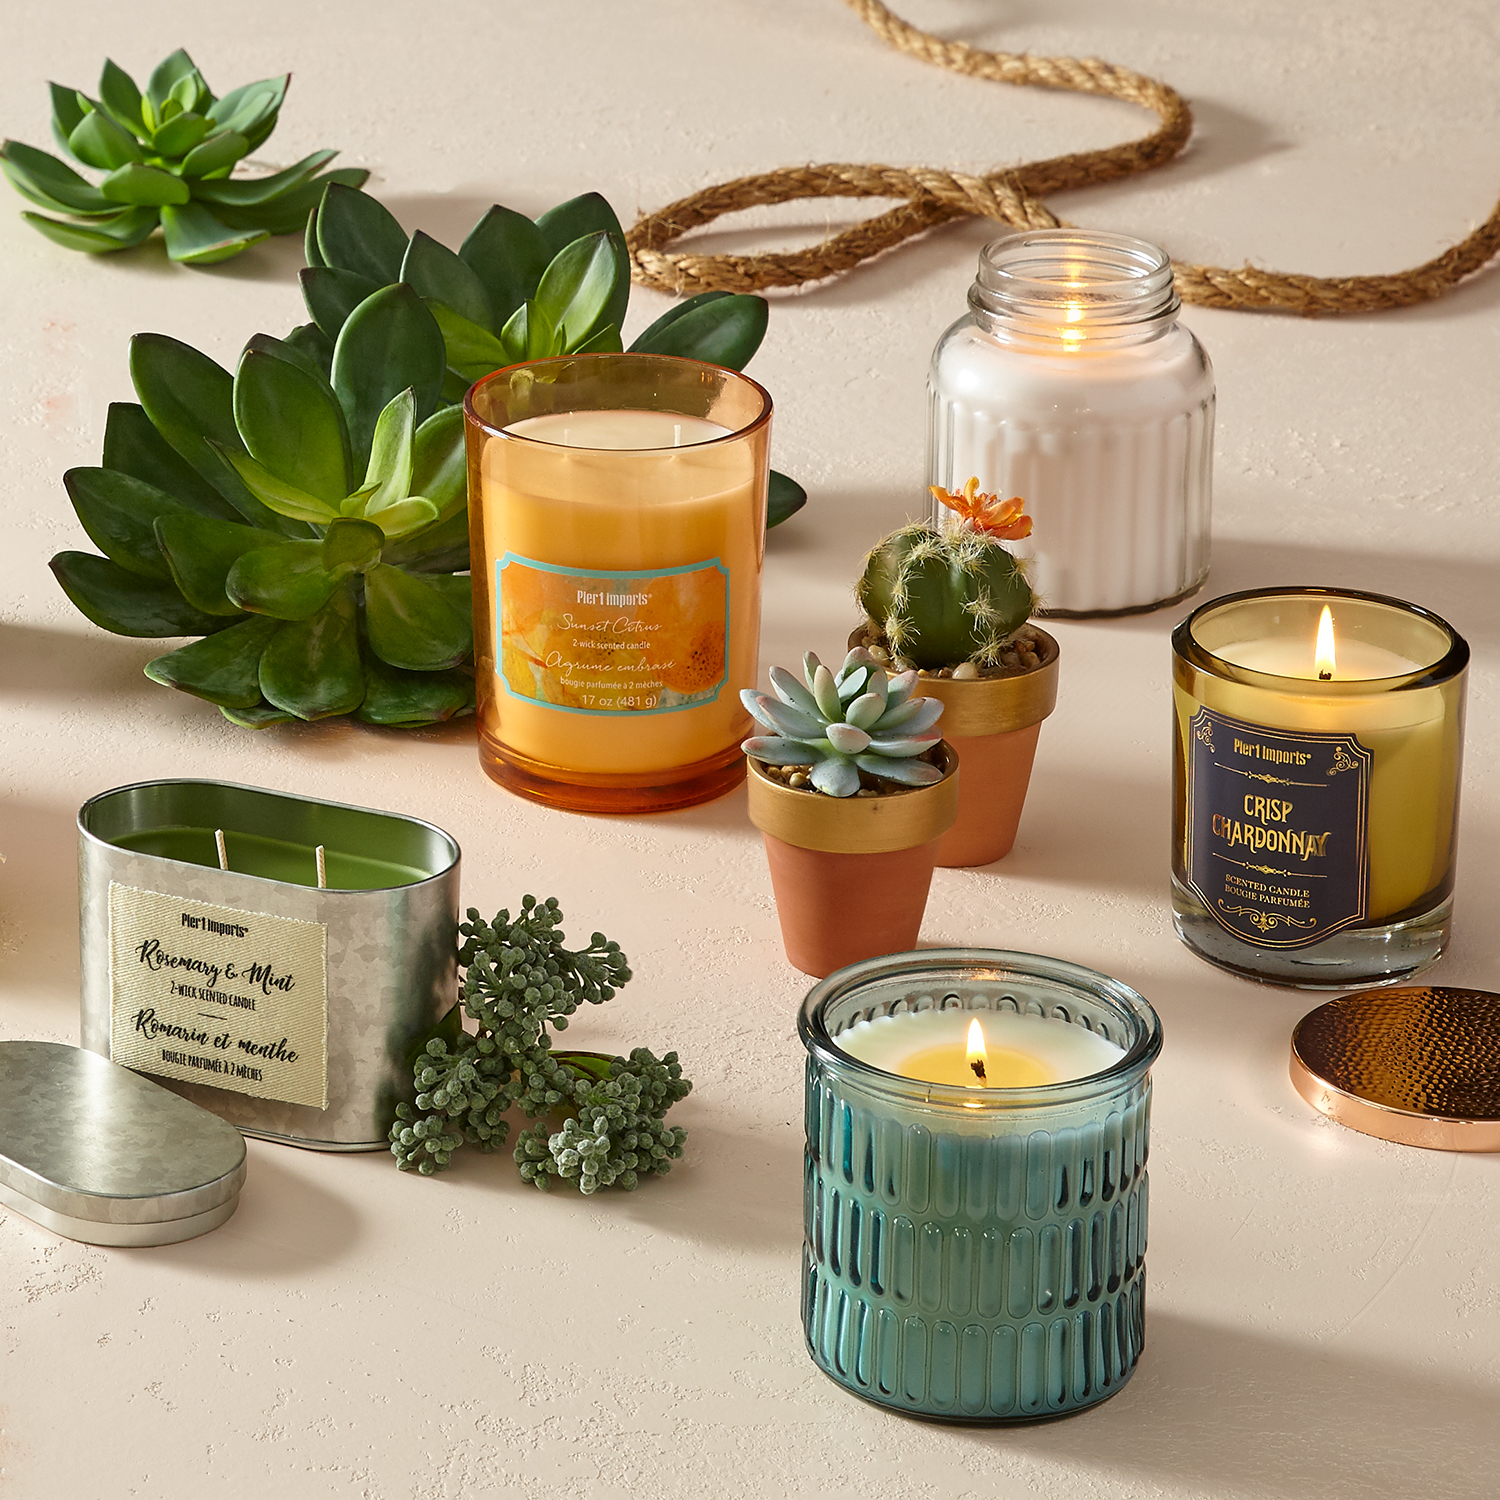 Rosemary & Mint Large Filled Candle